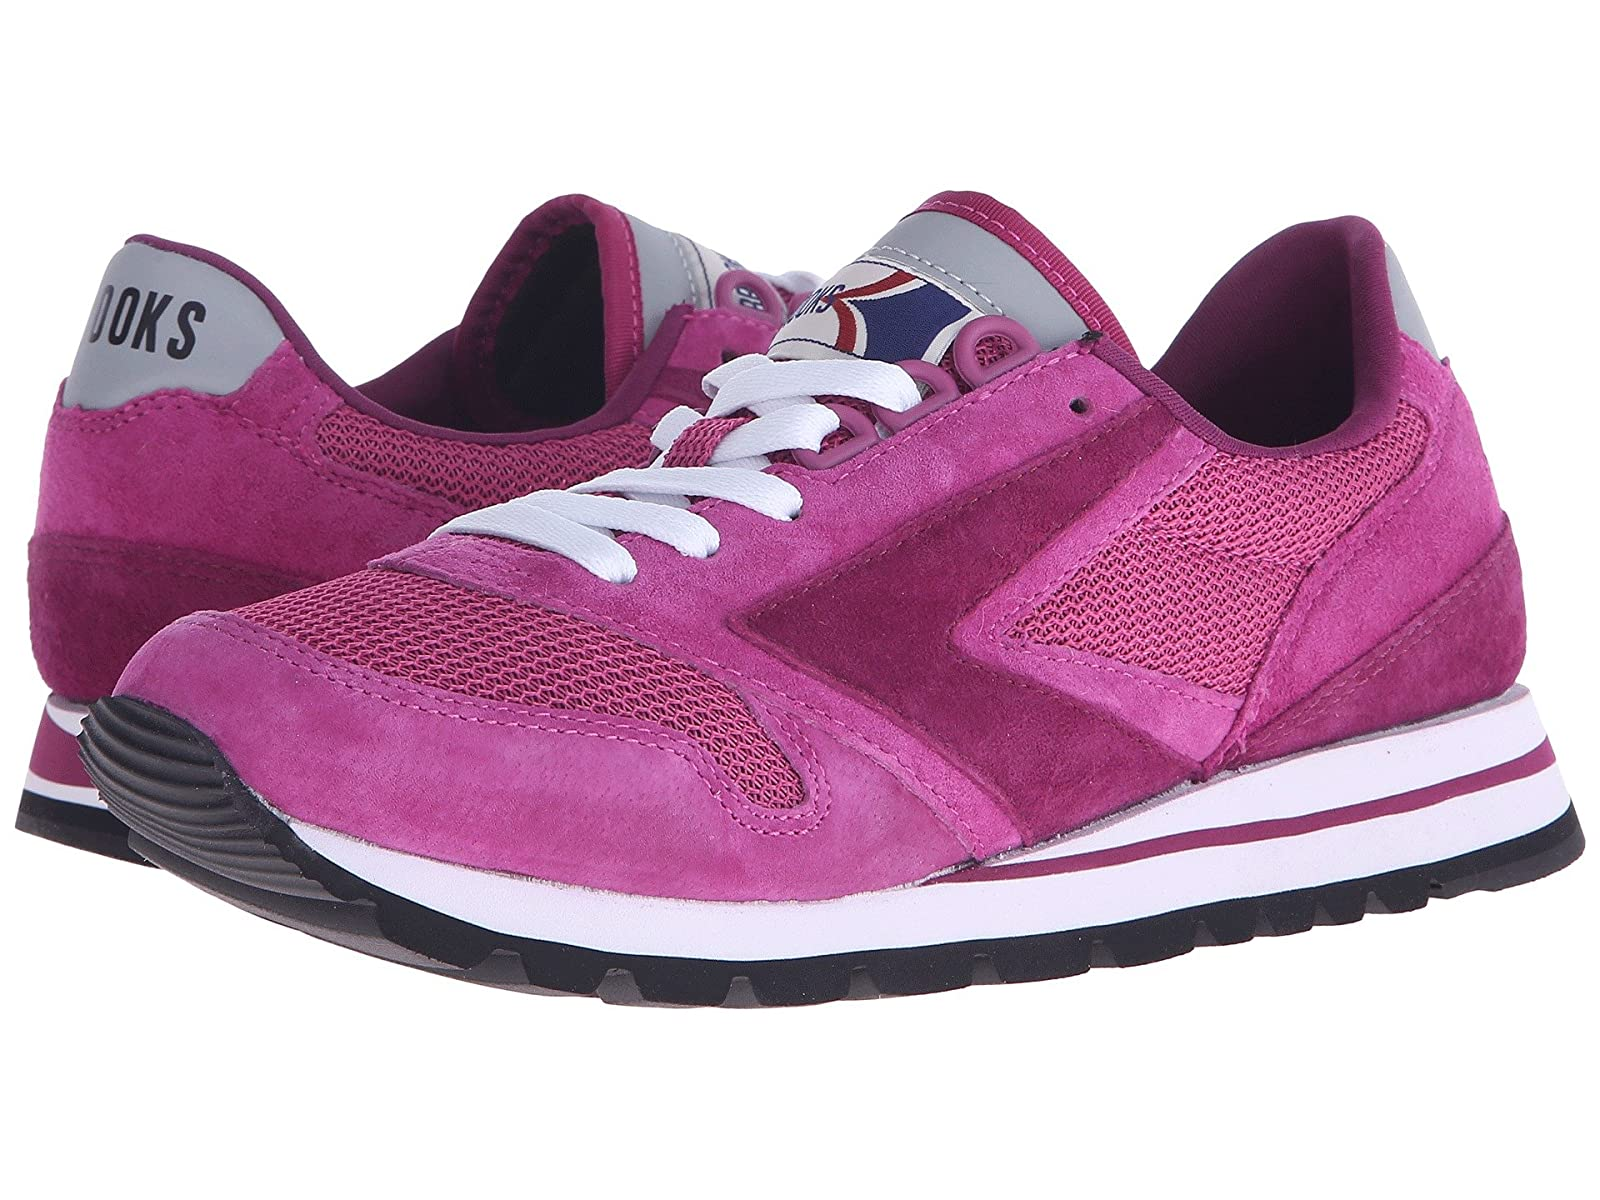 Brooks Heritage ChariotCheap and distinctive eye-catching shoes